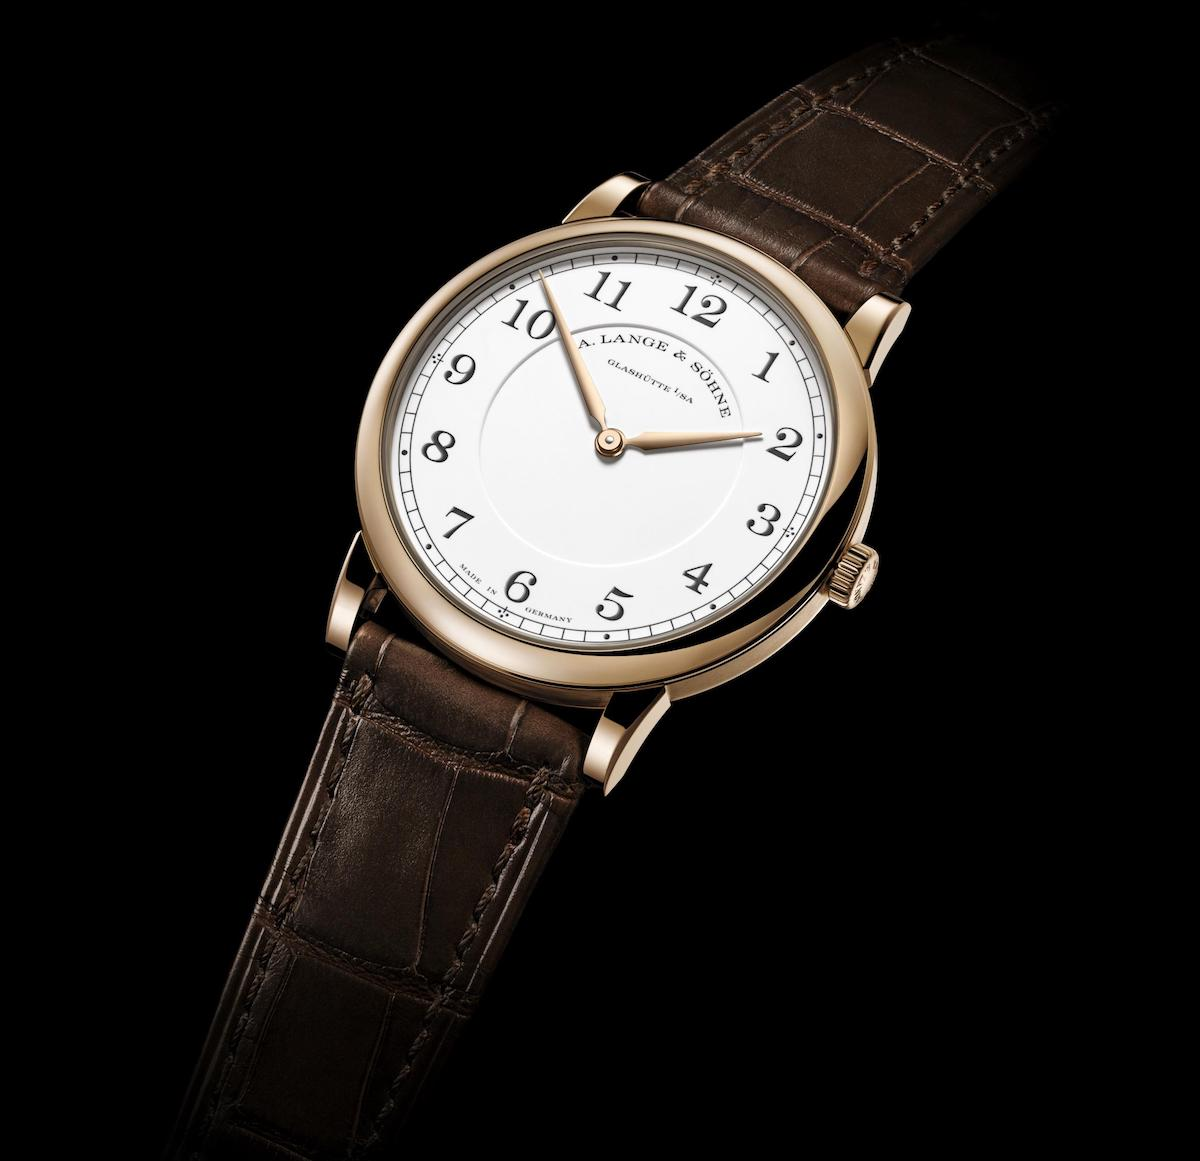 A. Lange & Soehne 1815 THIN HONEYGOLD Homage to F. A. Lange